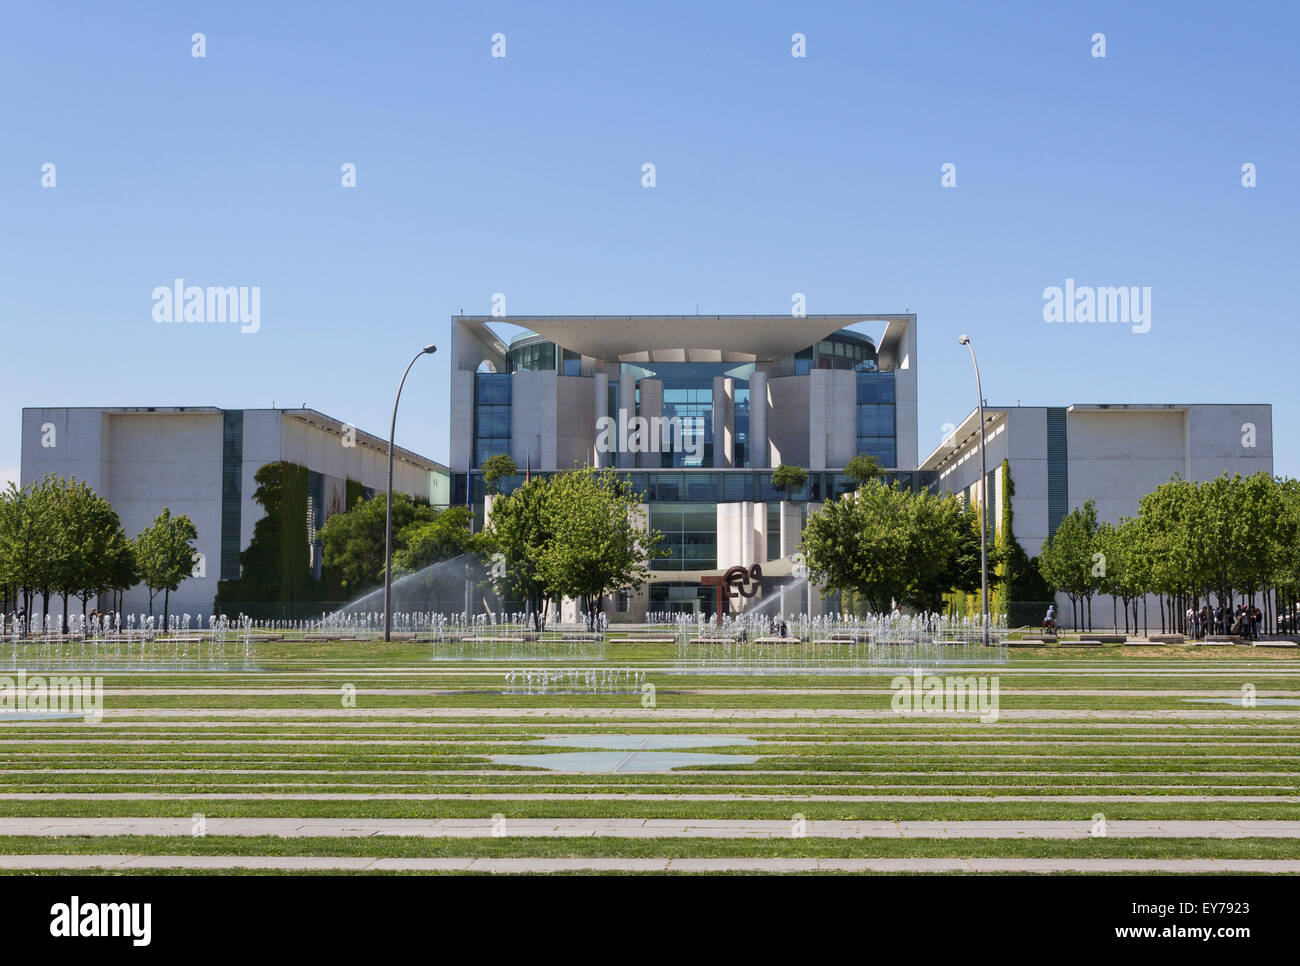 The German Federal Chancellery (Bundeskanzleramt) exterior front view. Stock Photo